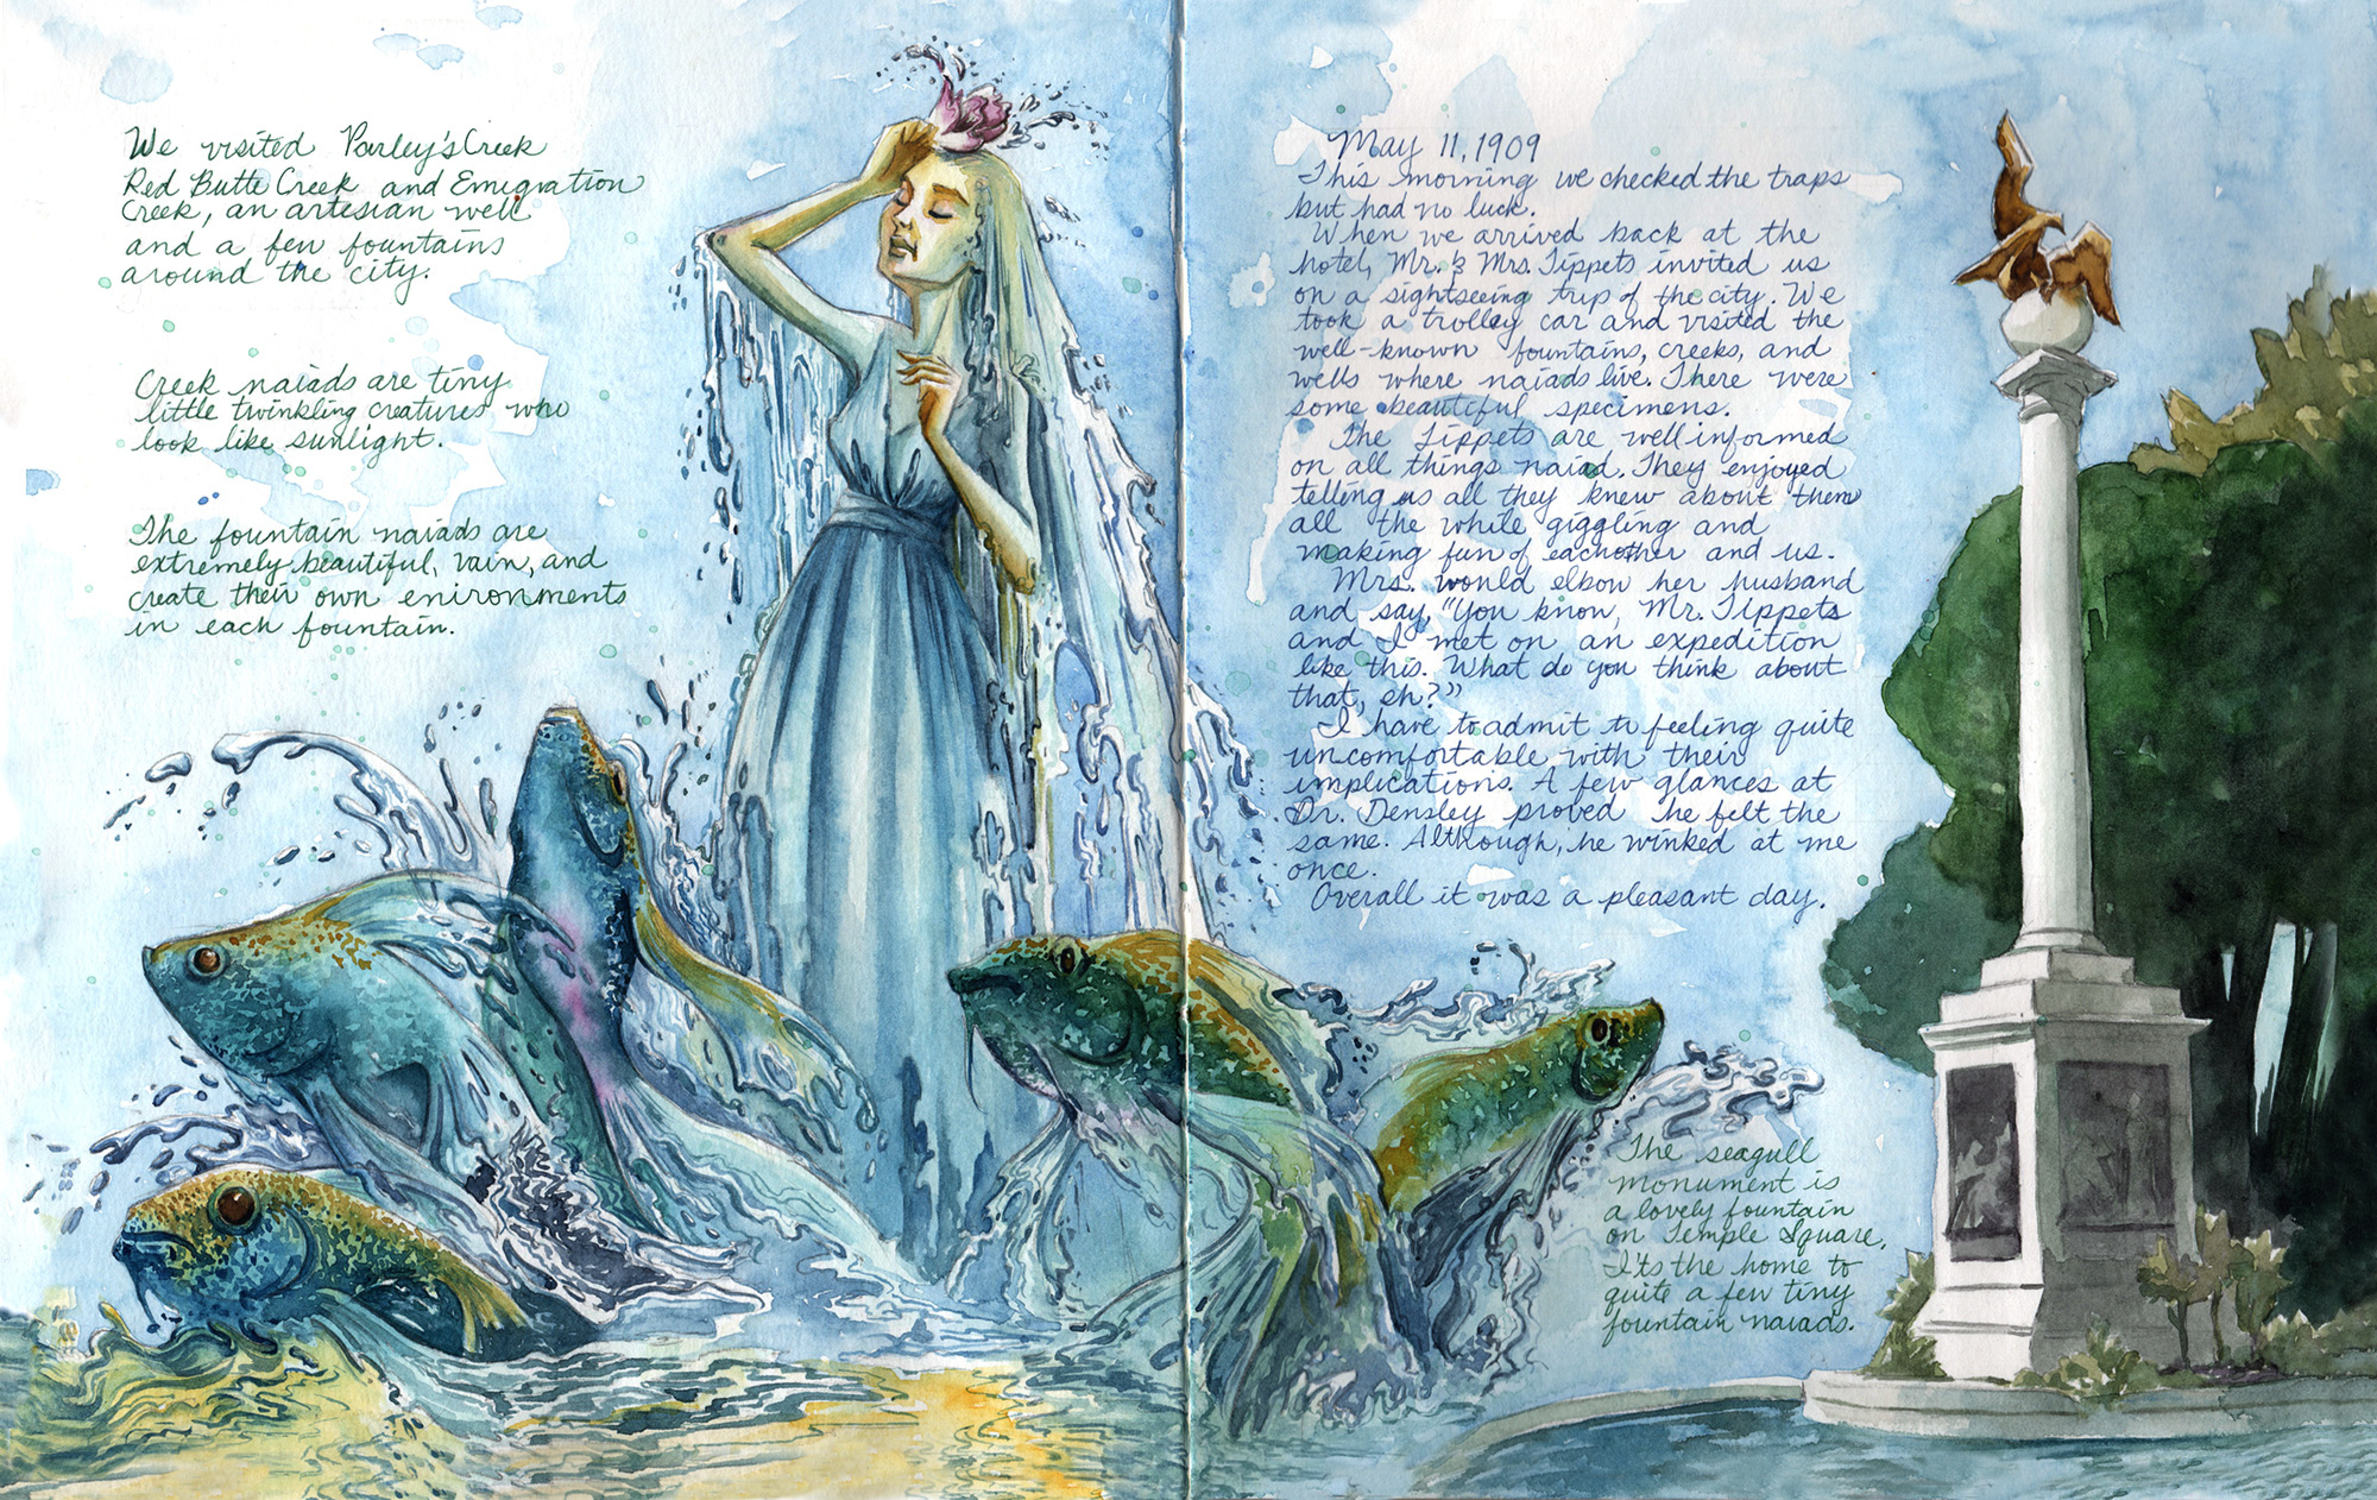 The Great Naiad Discovery of 1909 Page 14-15 Artwork by Manelle Oliphant